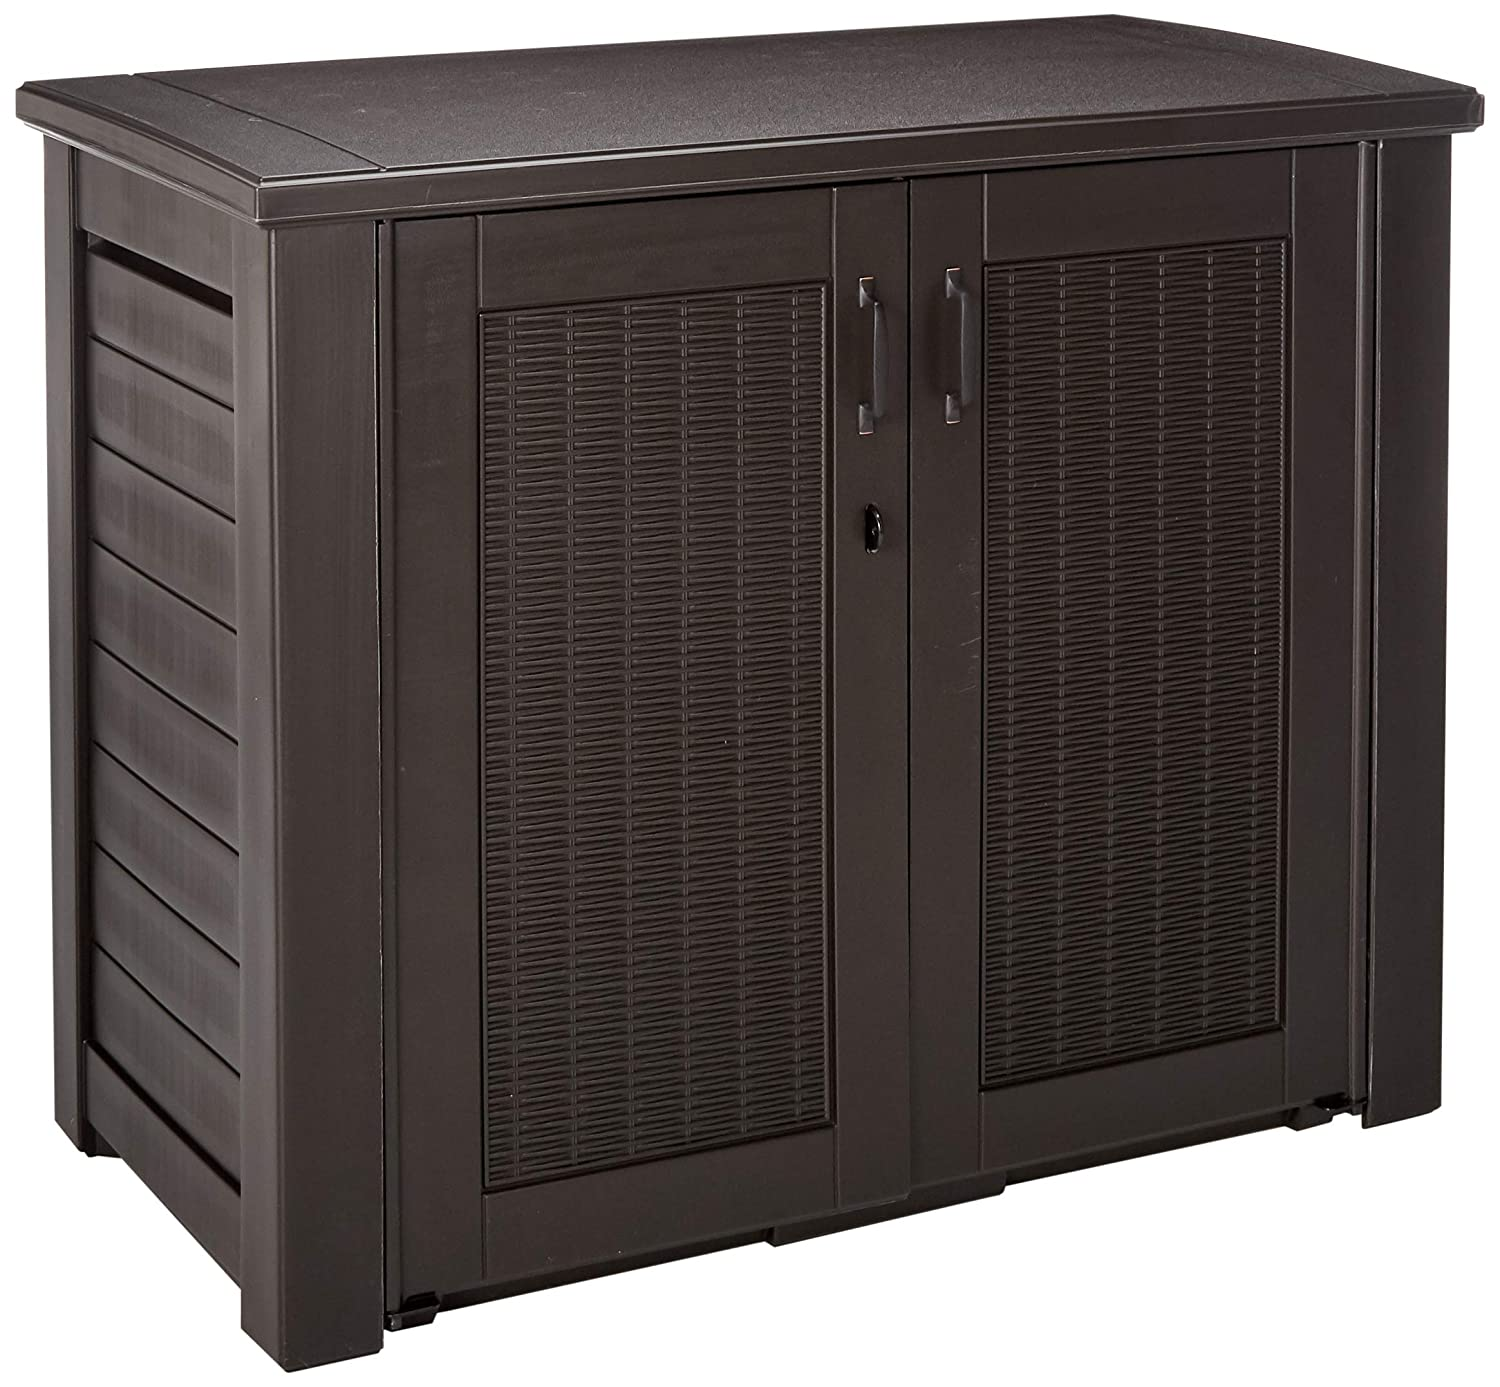 Rubbermaid Patio Chic Outdoor Storage Deck Box, Black Oak Rattan Wicker Basket Weave (1863391)